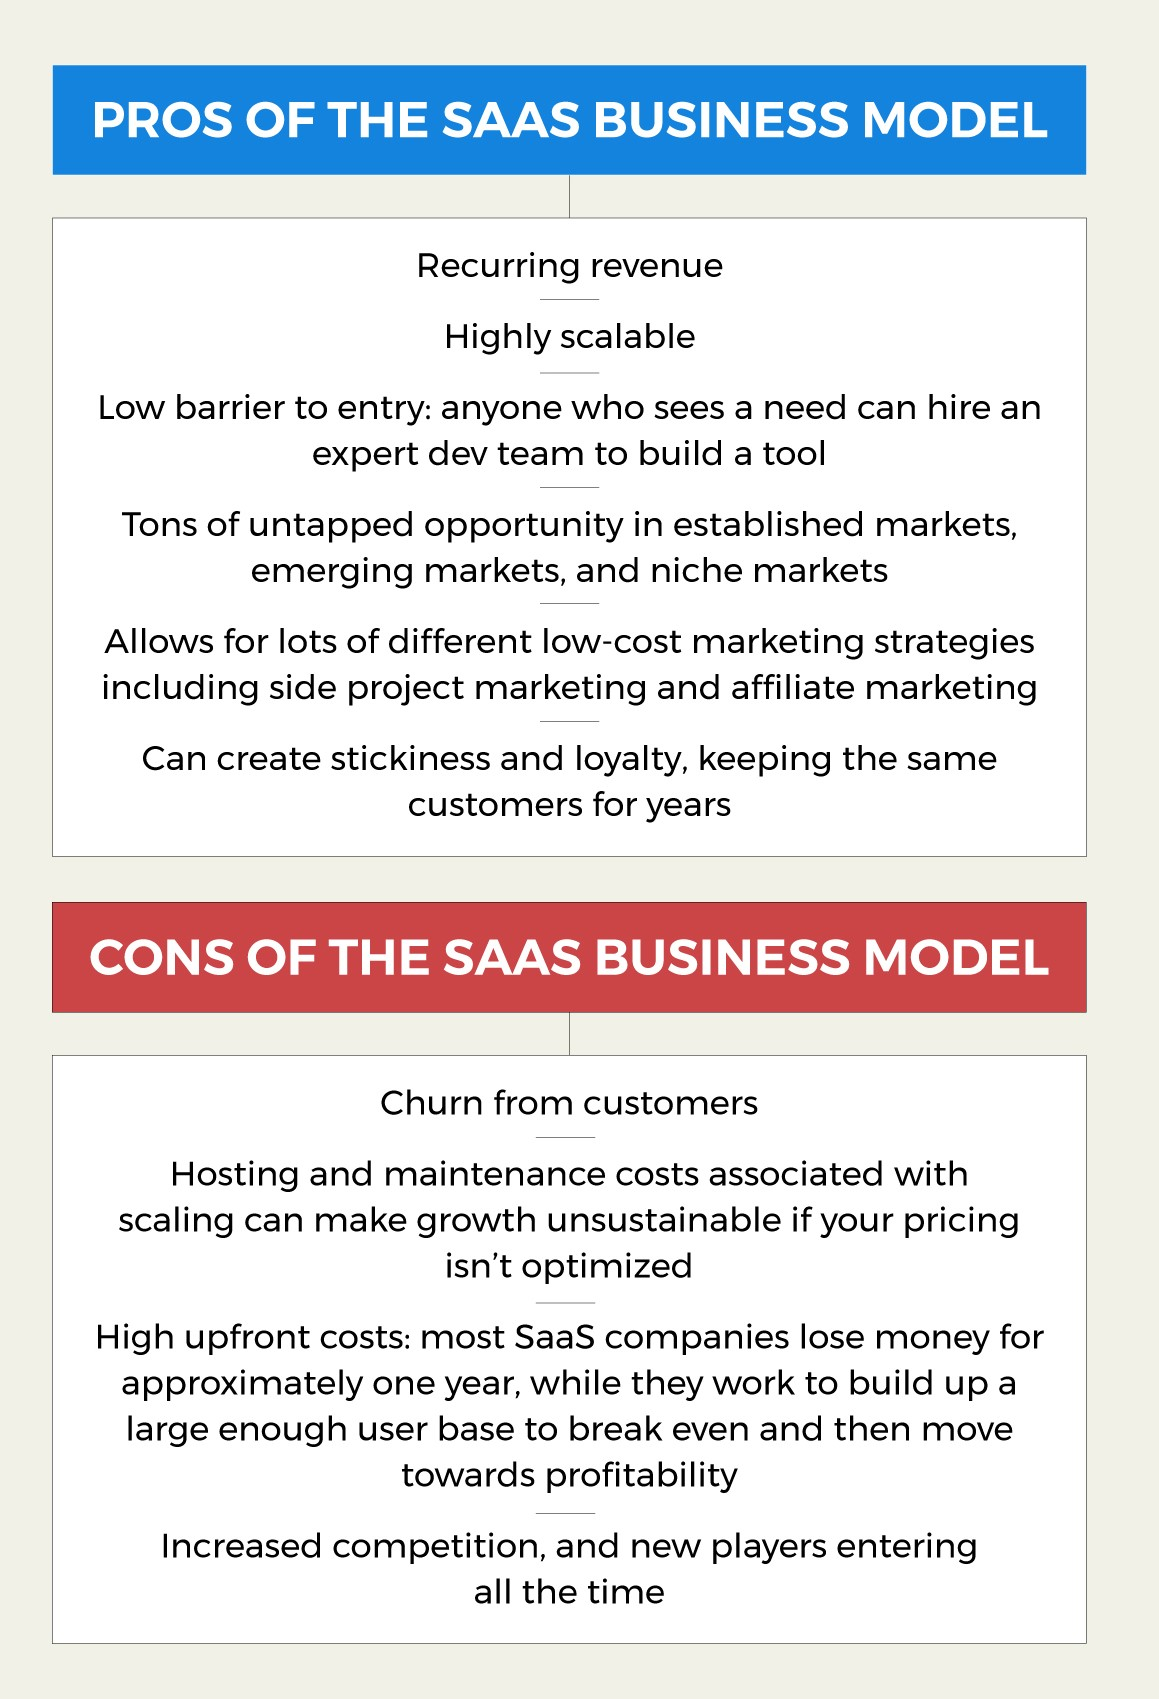 DevSquad Infographic SaaS Business Model pros and cons